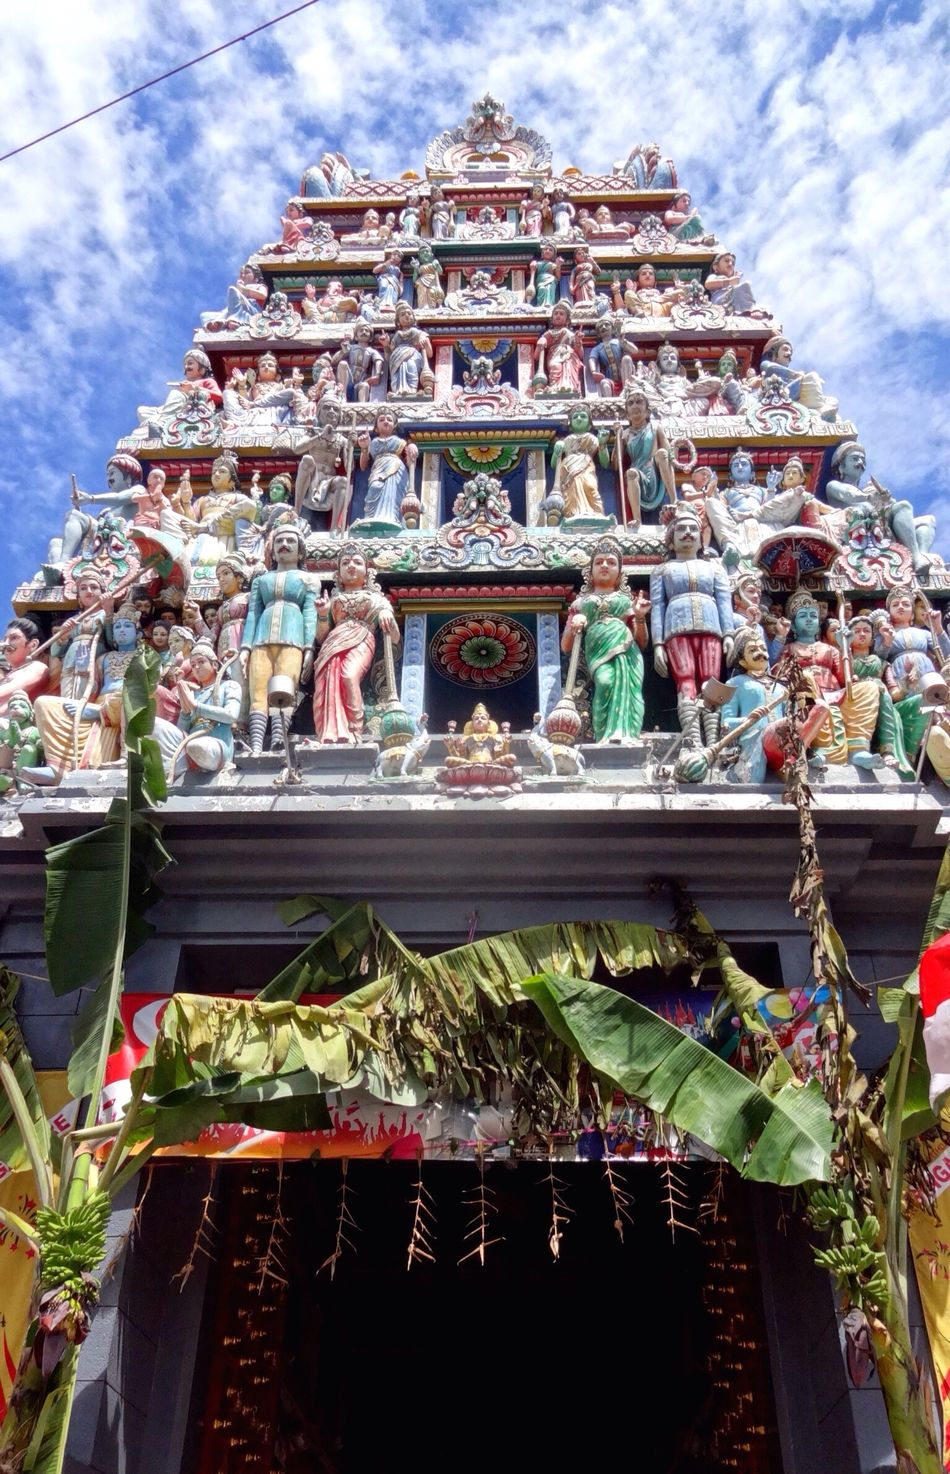 EyeEm Diversity Temple Hindu Temple Deities Deity Temple Architecture Sky And Clouds Figure Building Exterior Colorful Multiple Layers Art Is Everywhere